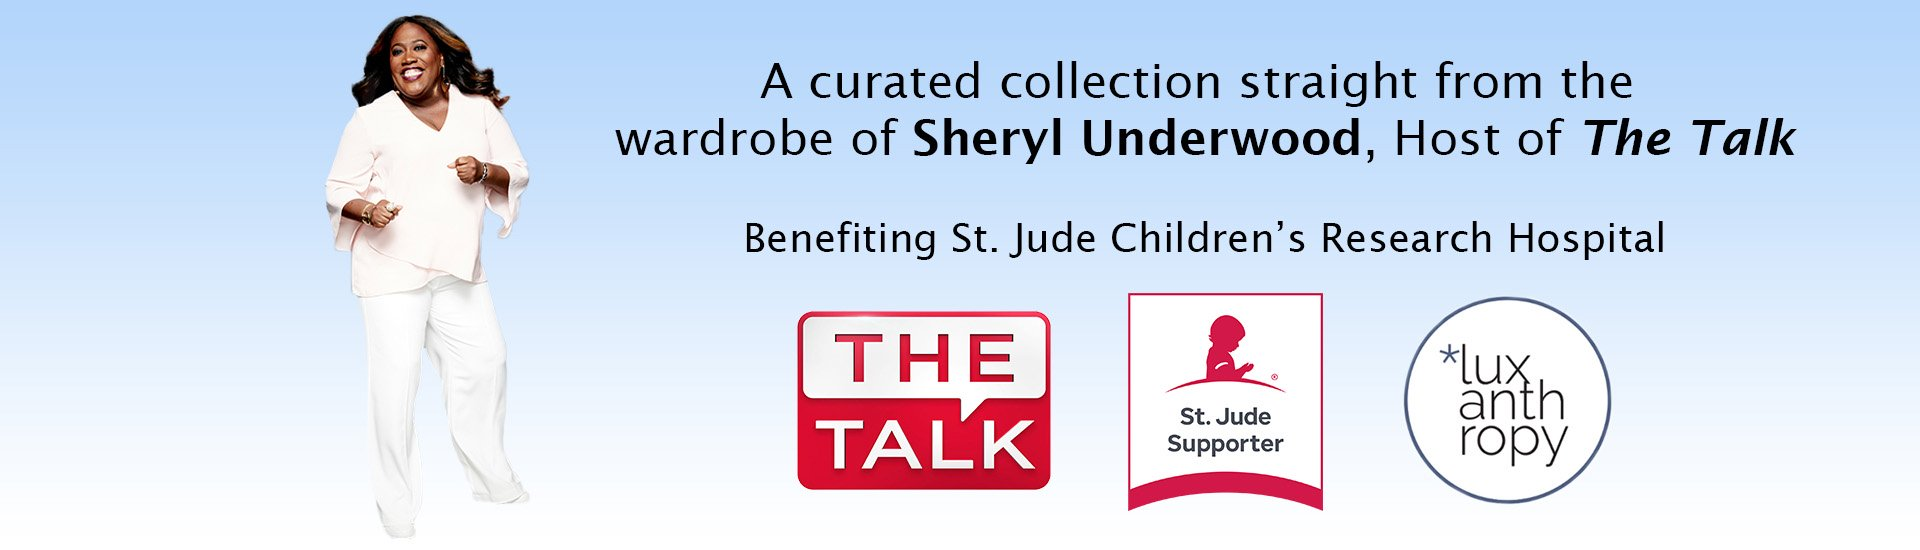 Sheryl Underwood The Talk Collection